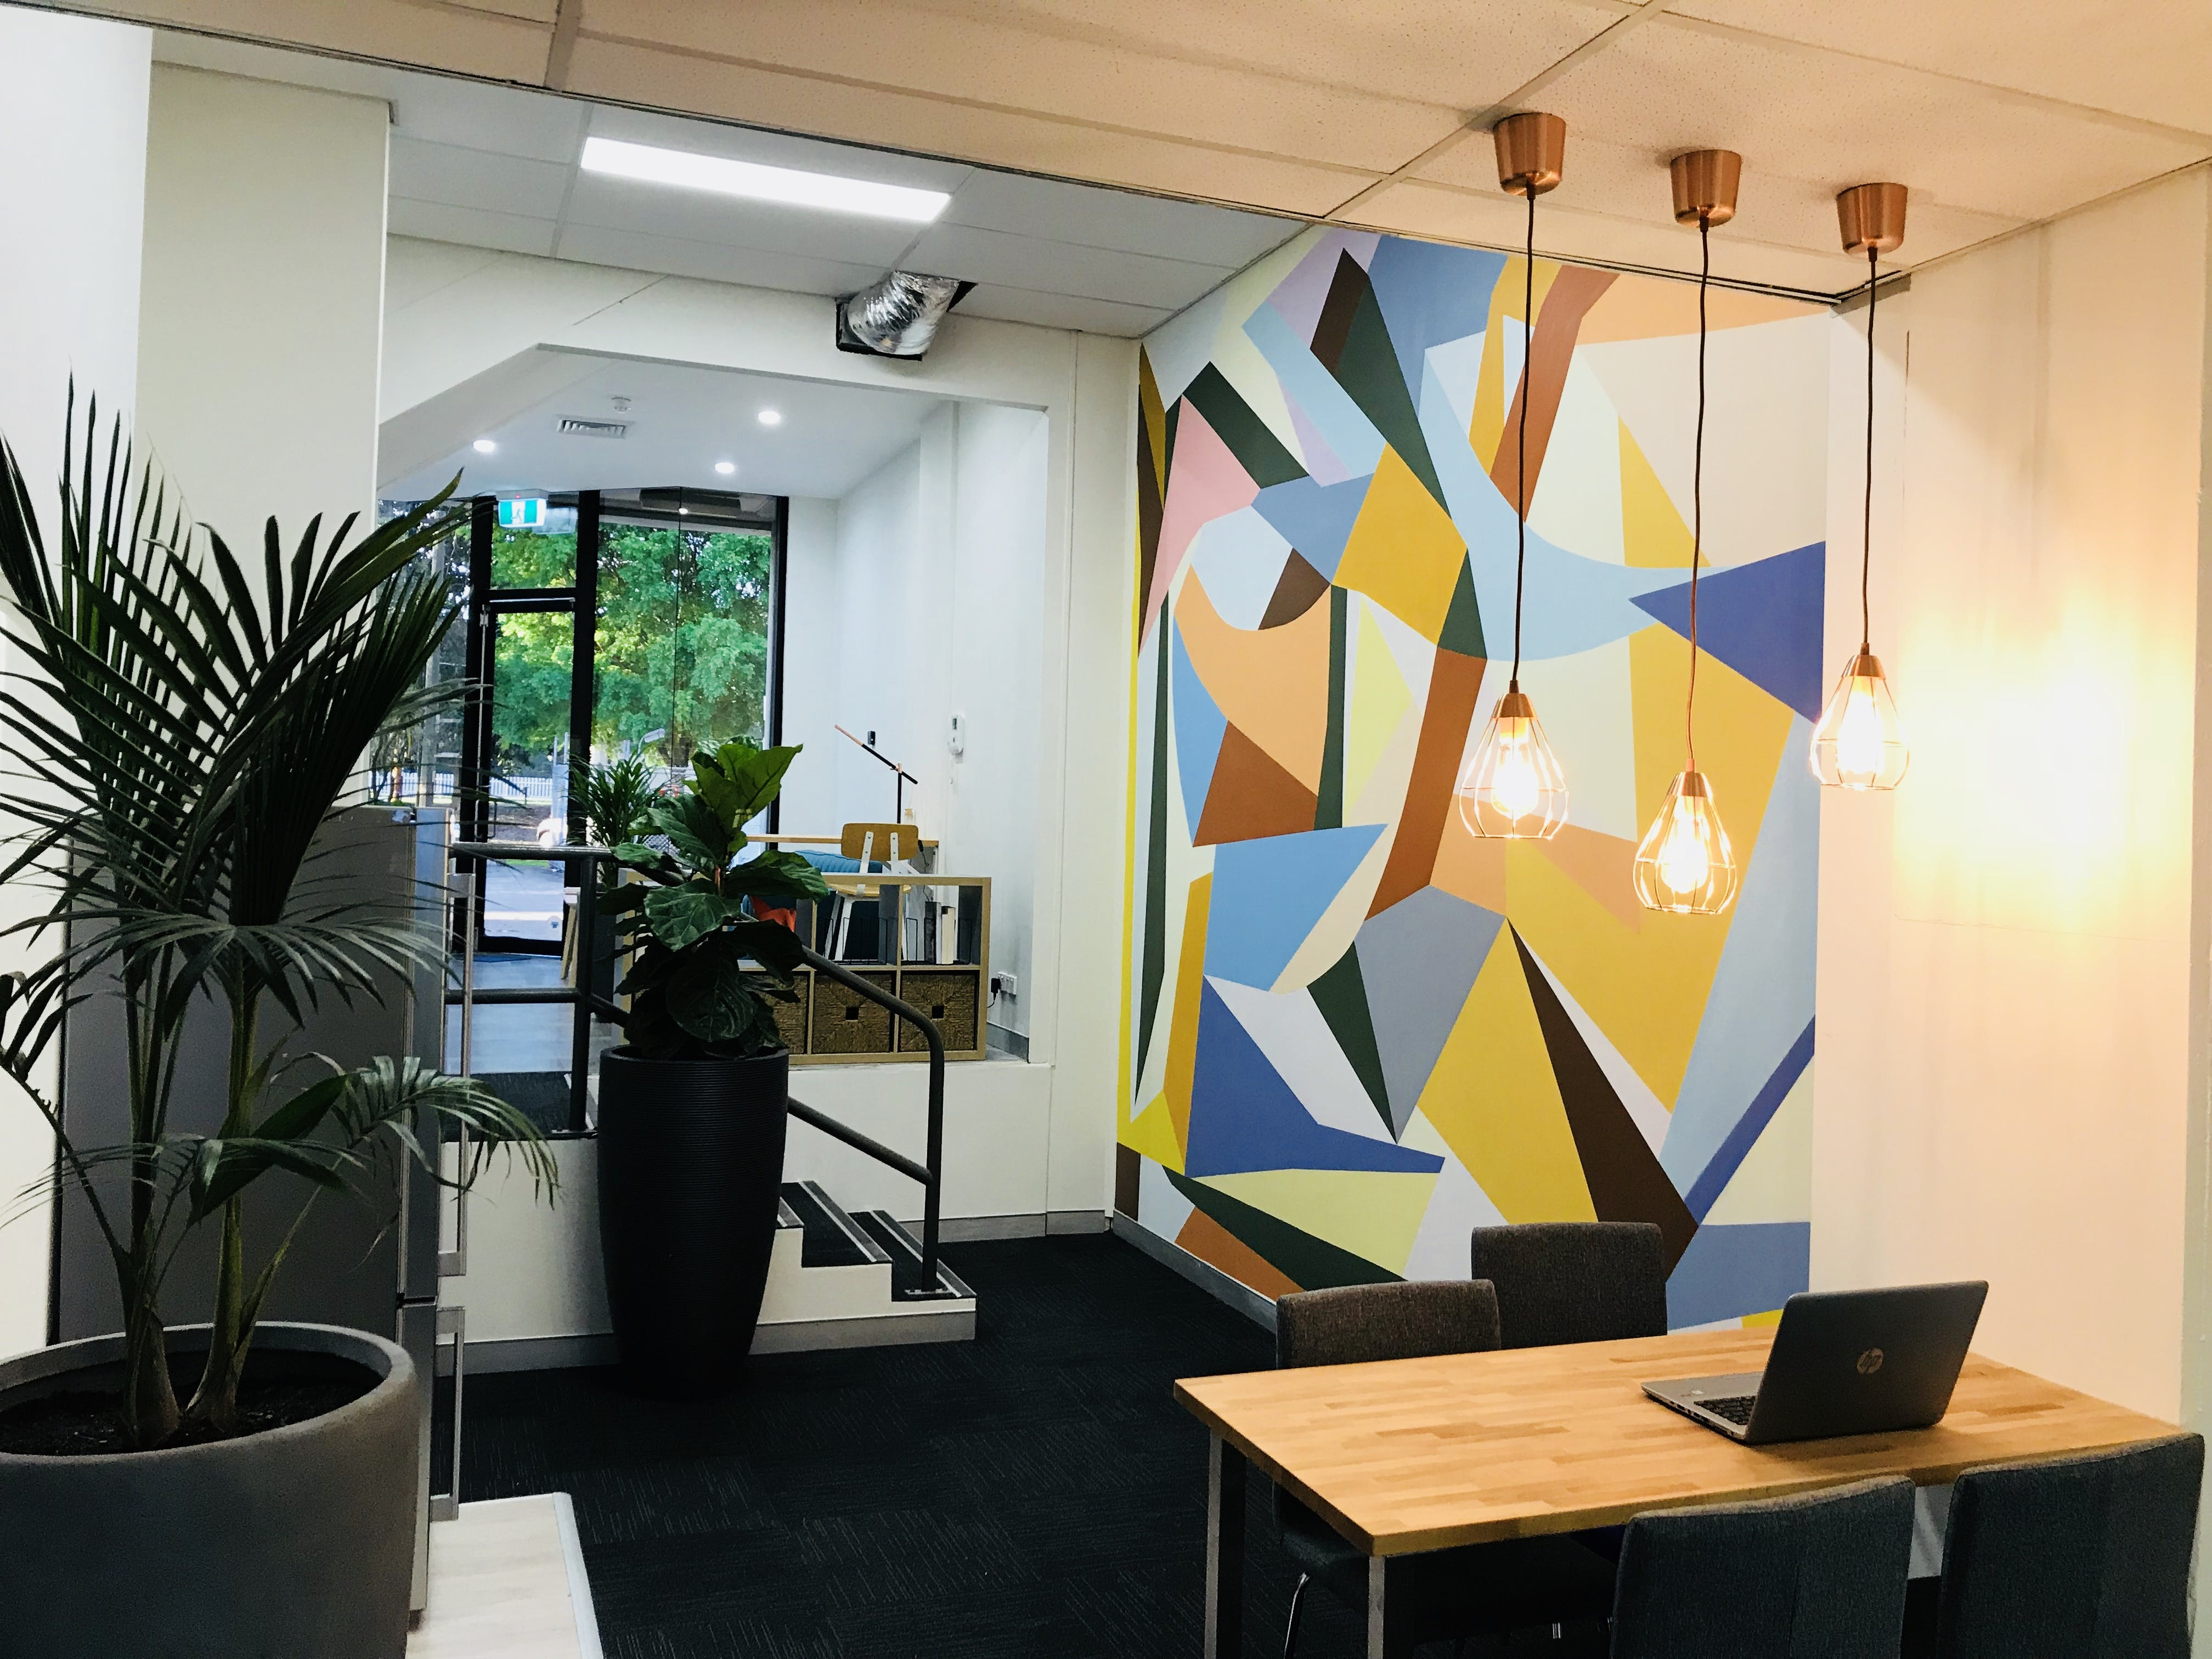 6 person Office by Alexandria Park, serviced office at Workit Spaces, image 1